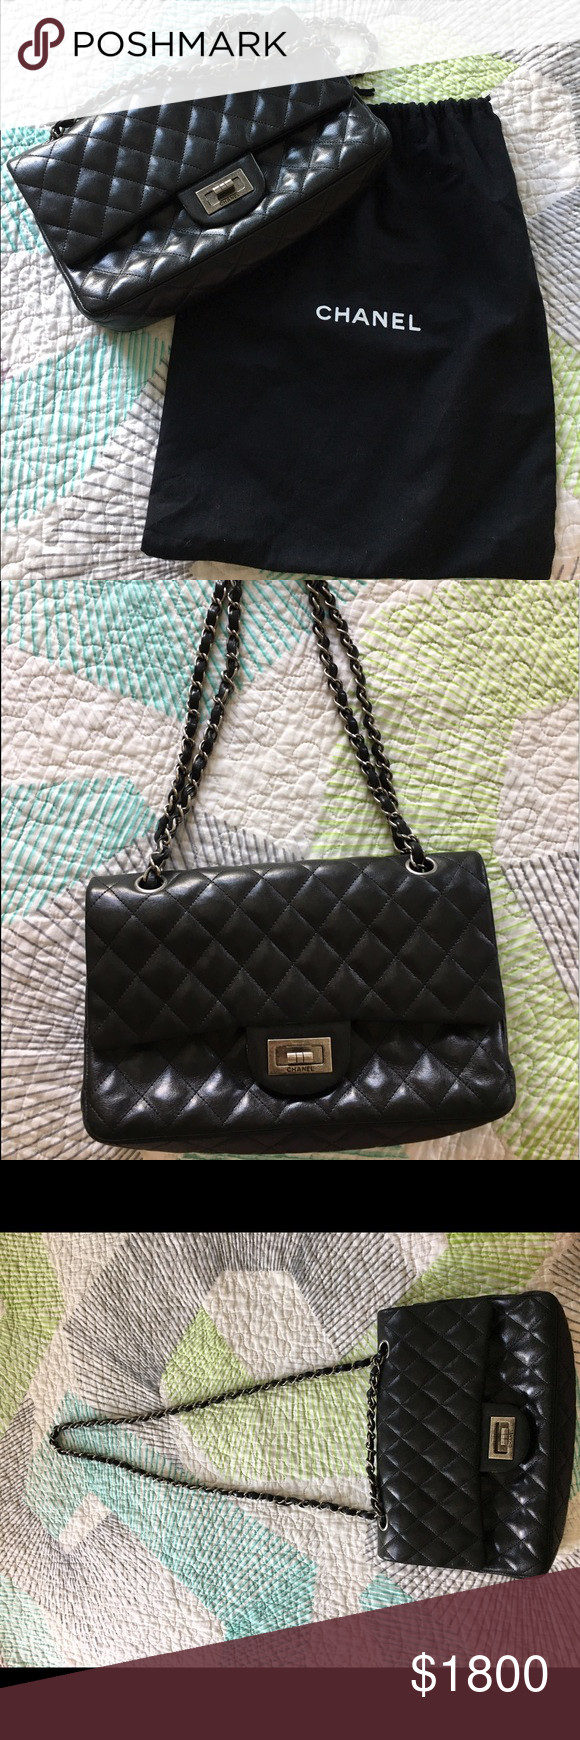 Chanel 2.55 reissue Chanel Classic Double Hybrid Reissue Flap Bag Quilted  Lambskin Medium. Gently worn. In excellent condition CHANEL Bags Shoulder  Bags 81d7784e016ee